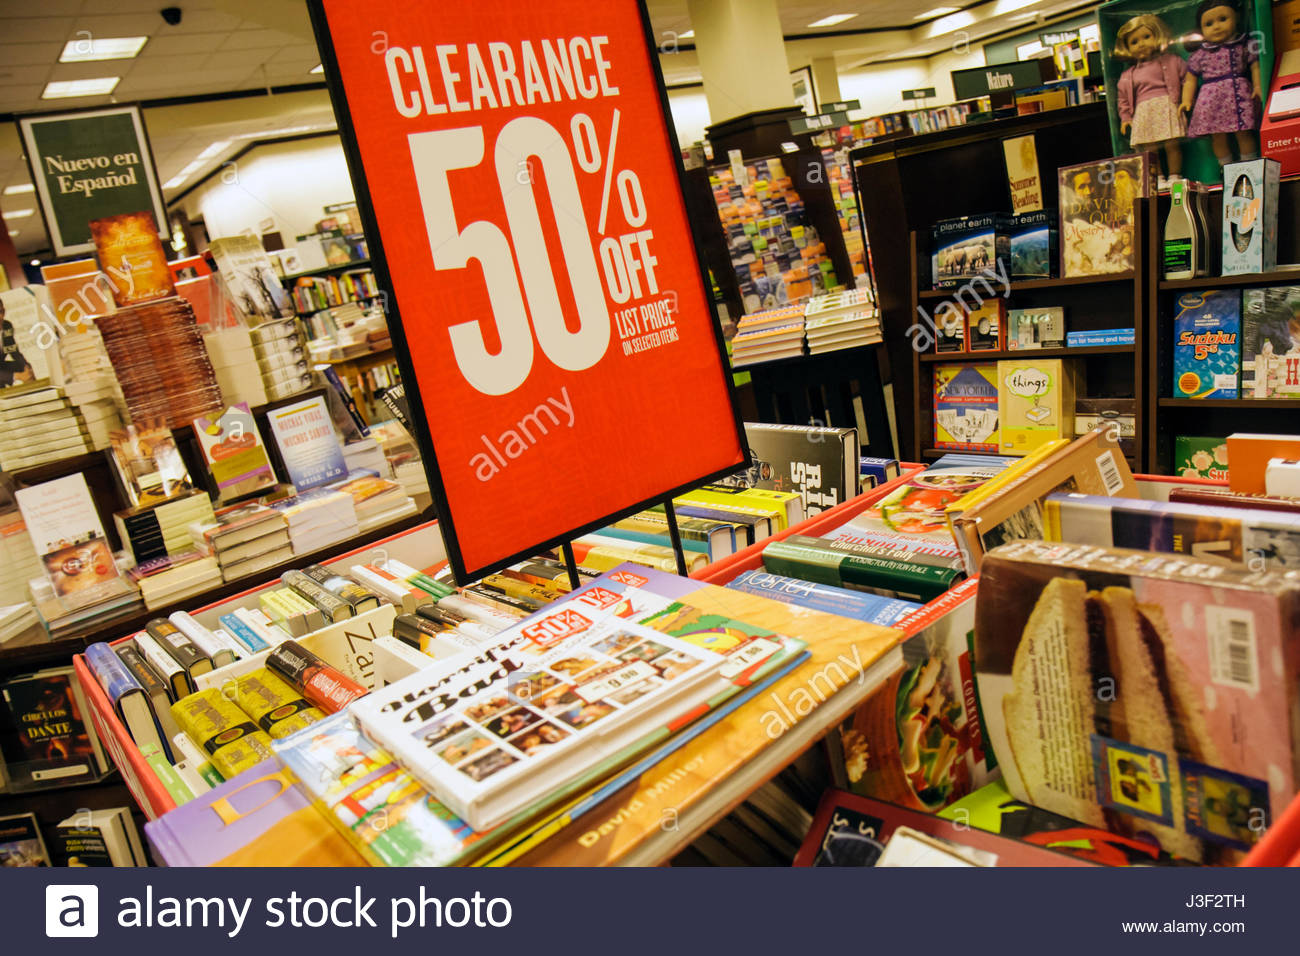 Barnes And Noble Display Stock Photos & Barnes And Noble ...